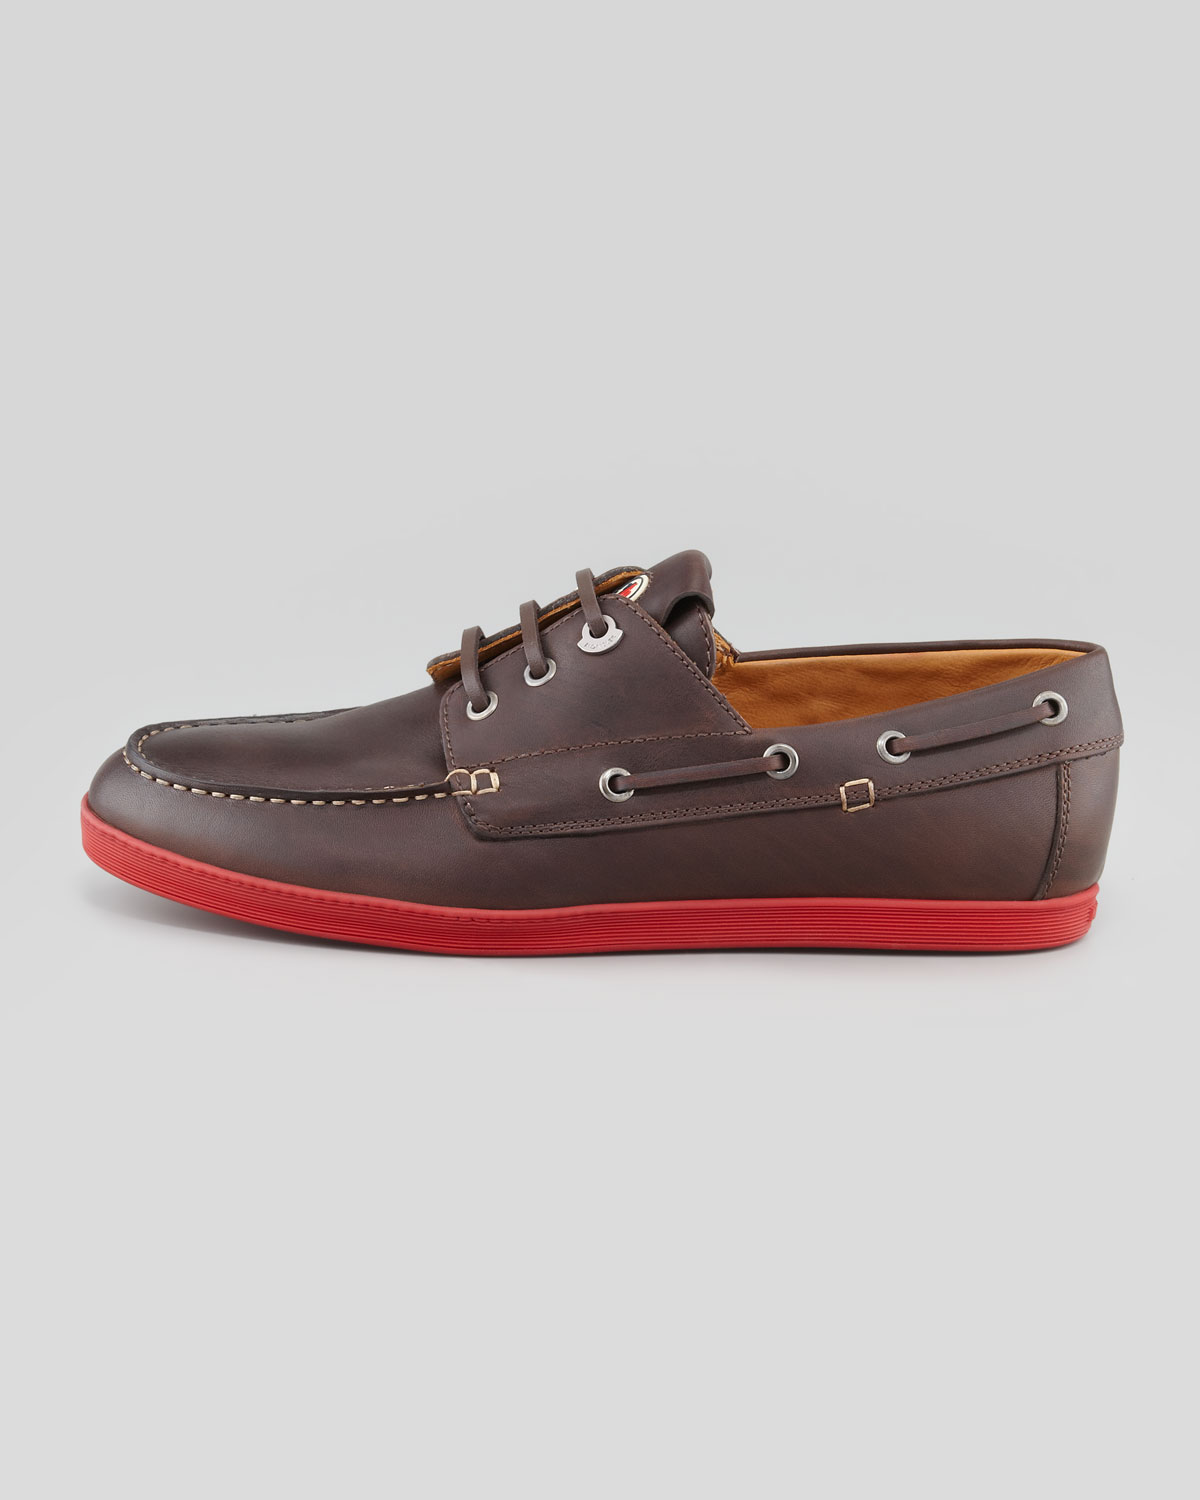 8f0ad1f601 Lyst - Moncler Guadaloupe Boat Shoe in Brown for Men